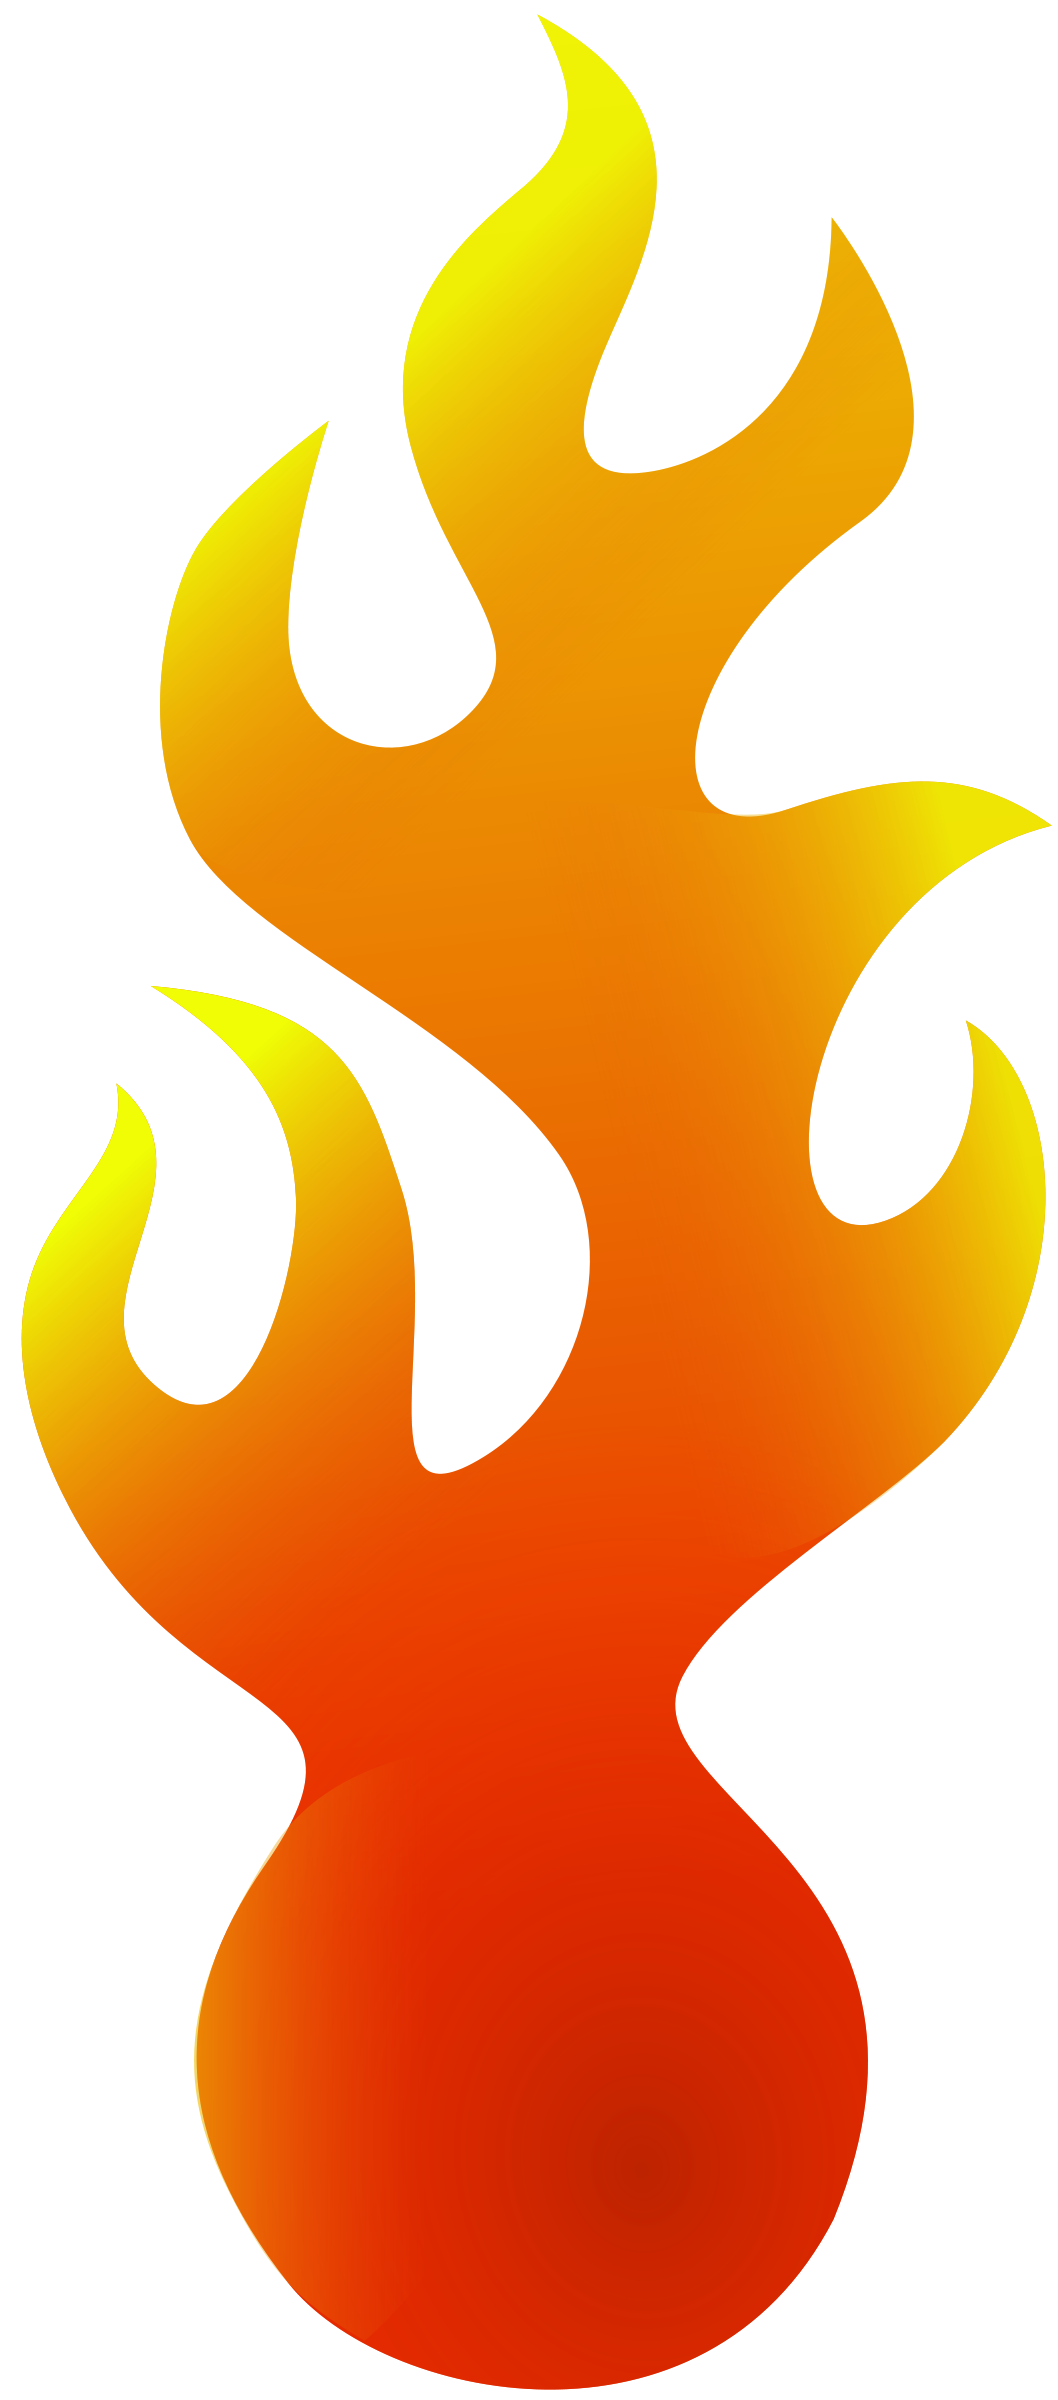 Fire panda free images. Heat clipart red wave